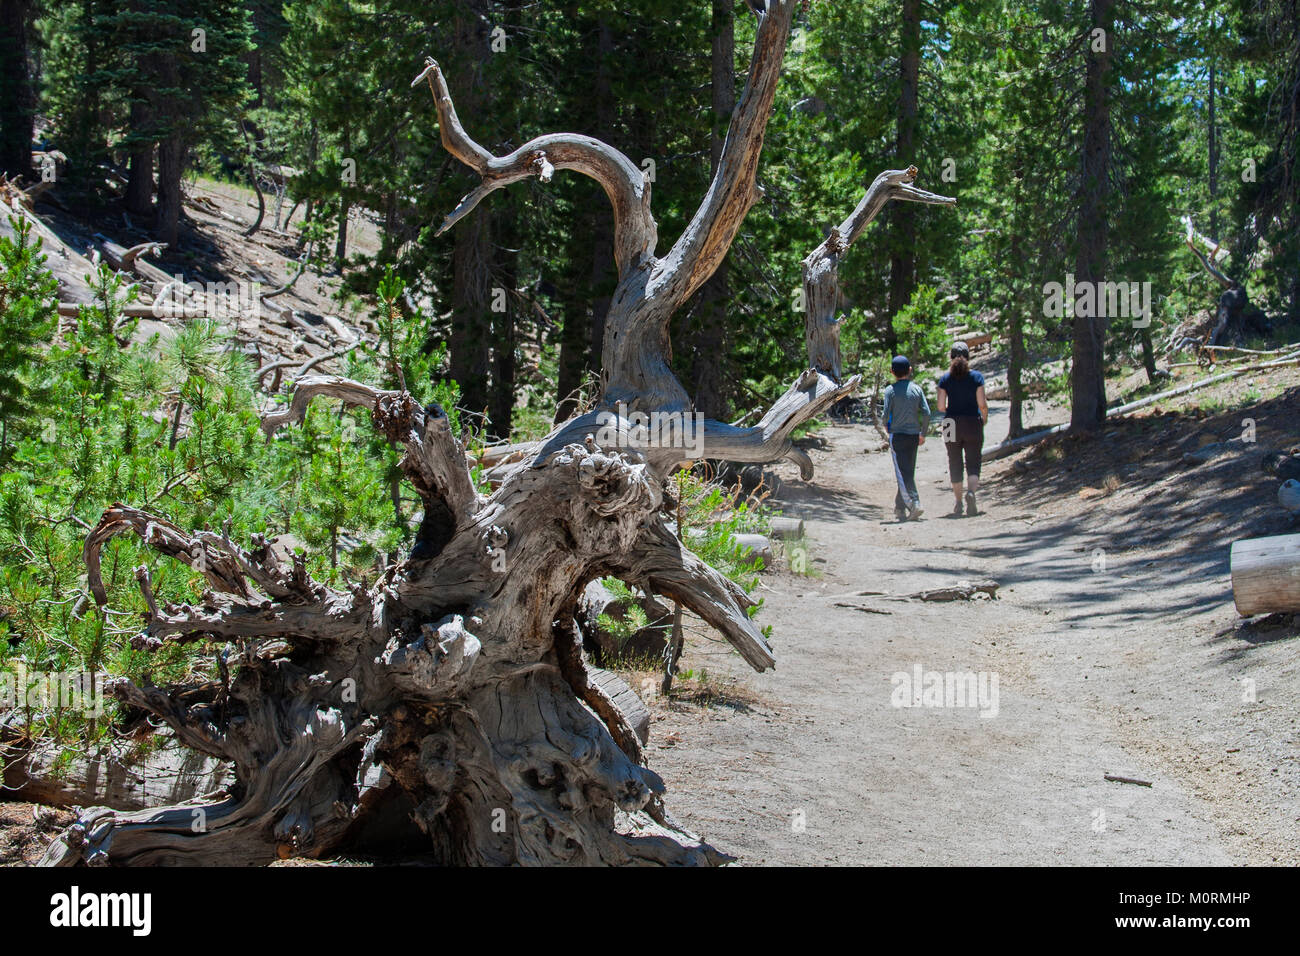 Hiking trail in Devils Postpile National Monument, Inyo National Forest, Madera County, California, USA - Stock Image